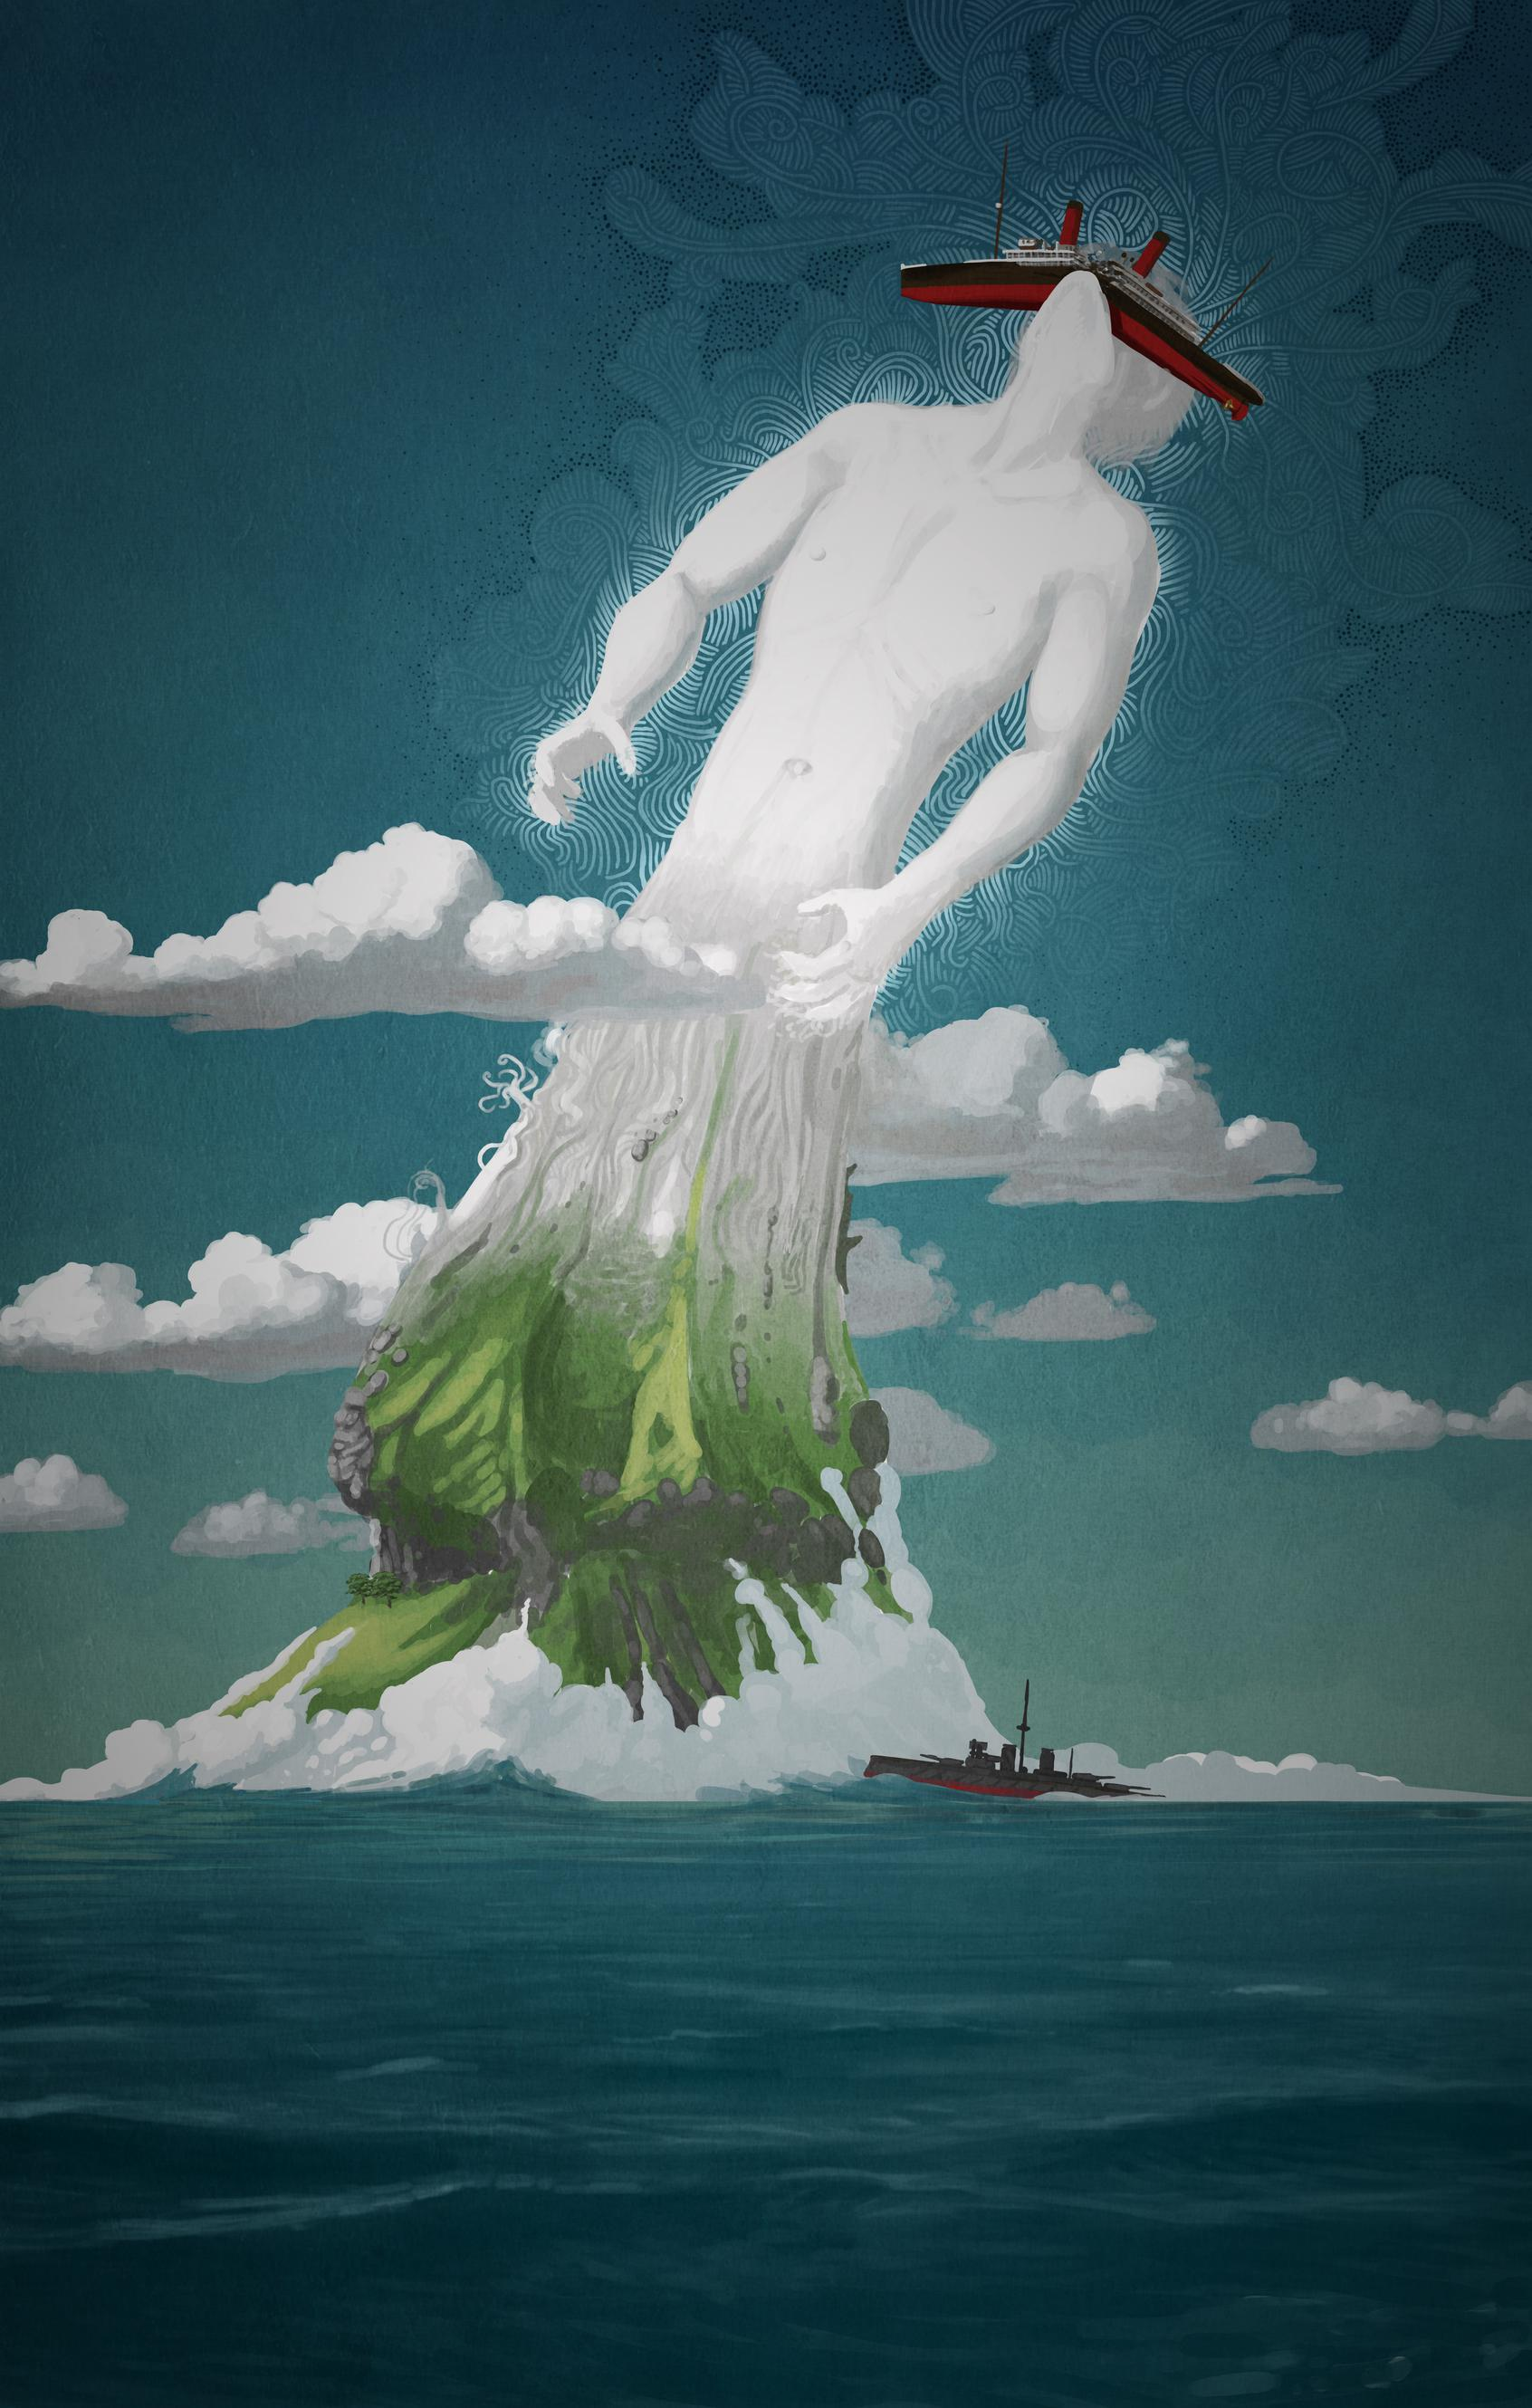 gods, ocean liners, surreal, islands, sea, mythology